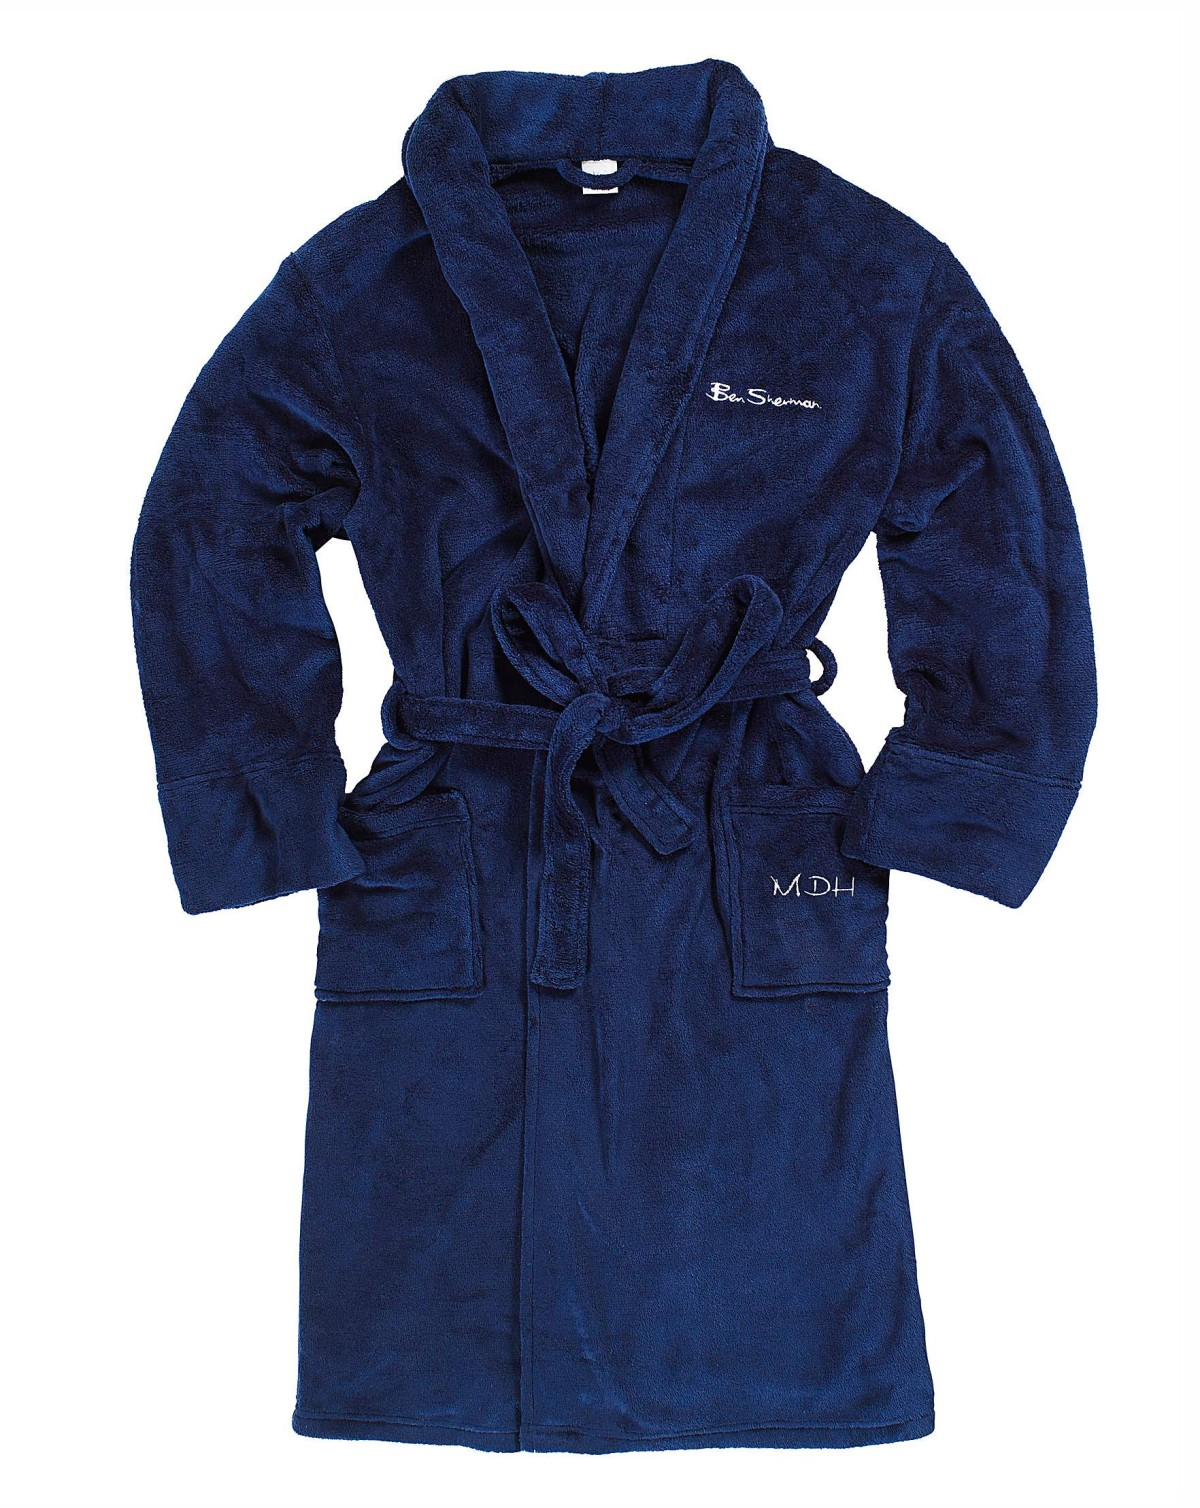 Ben Sherman fleece bathrobe